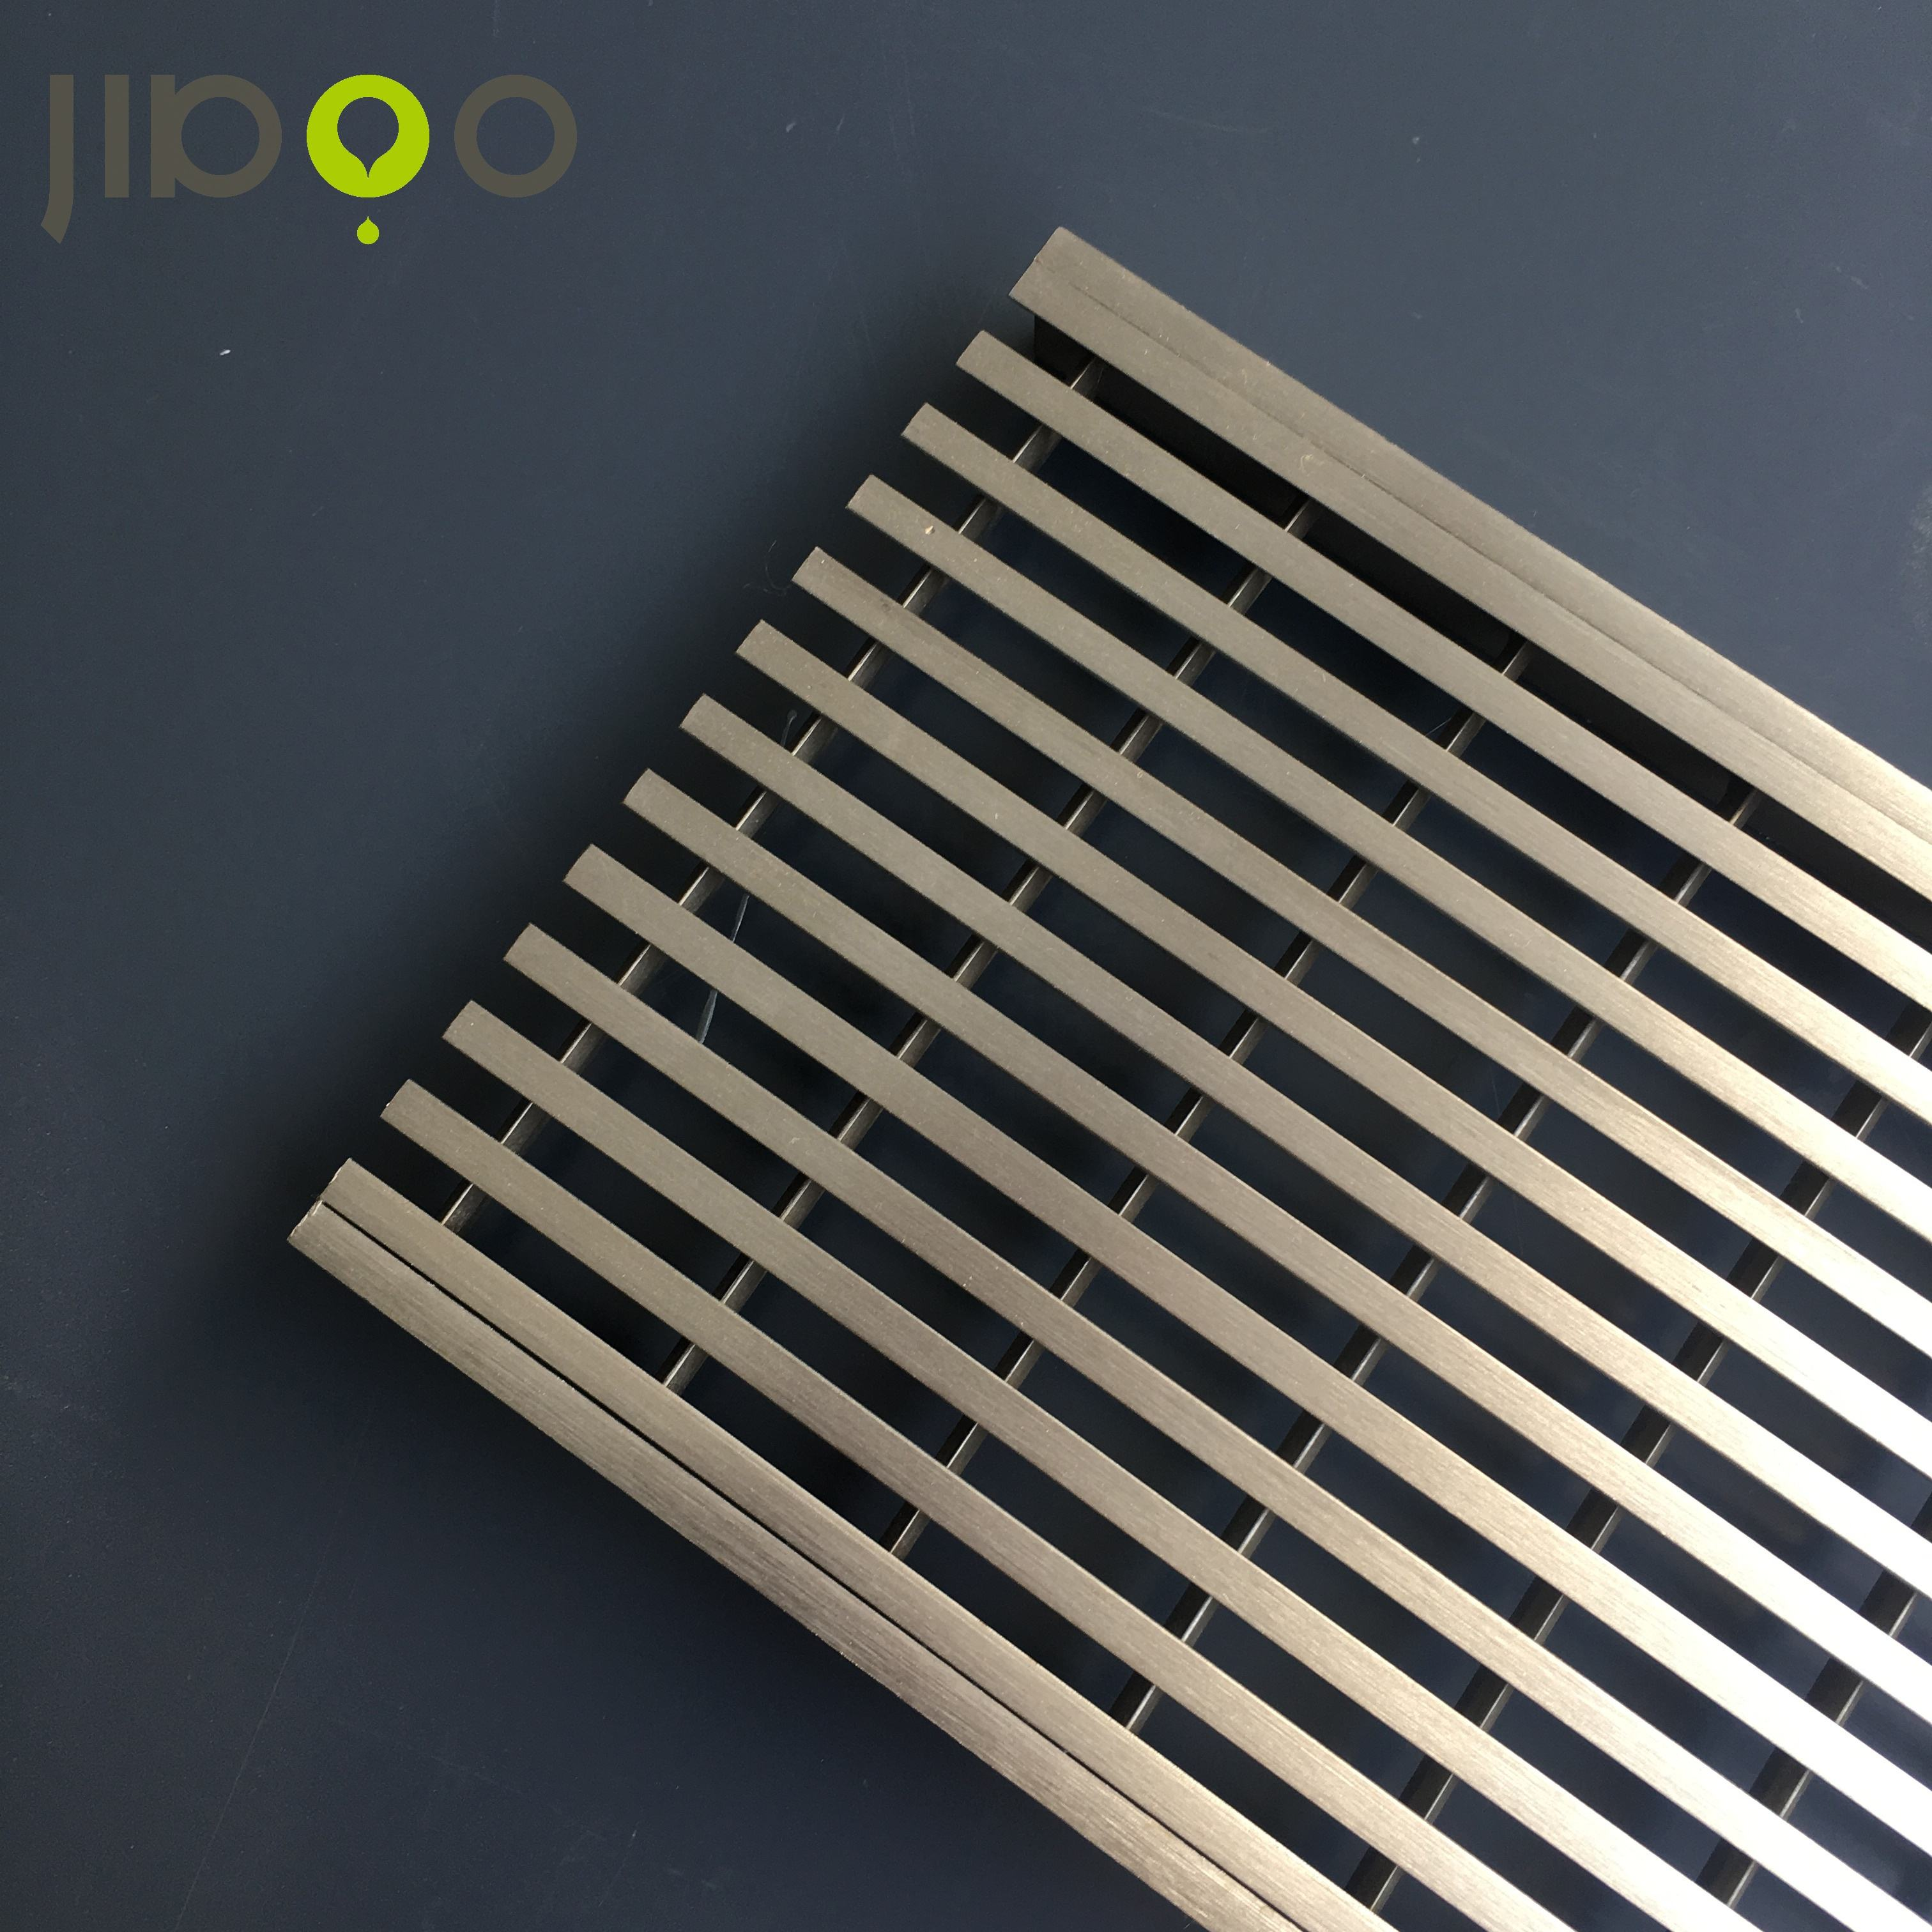 Stainless Steel Car Wash Drain Grating